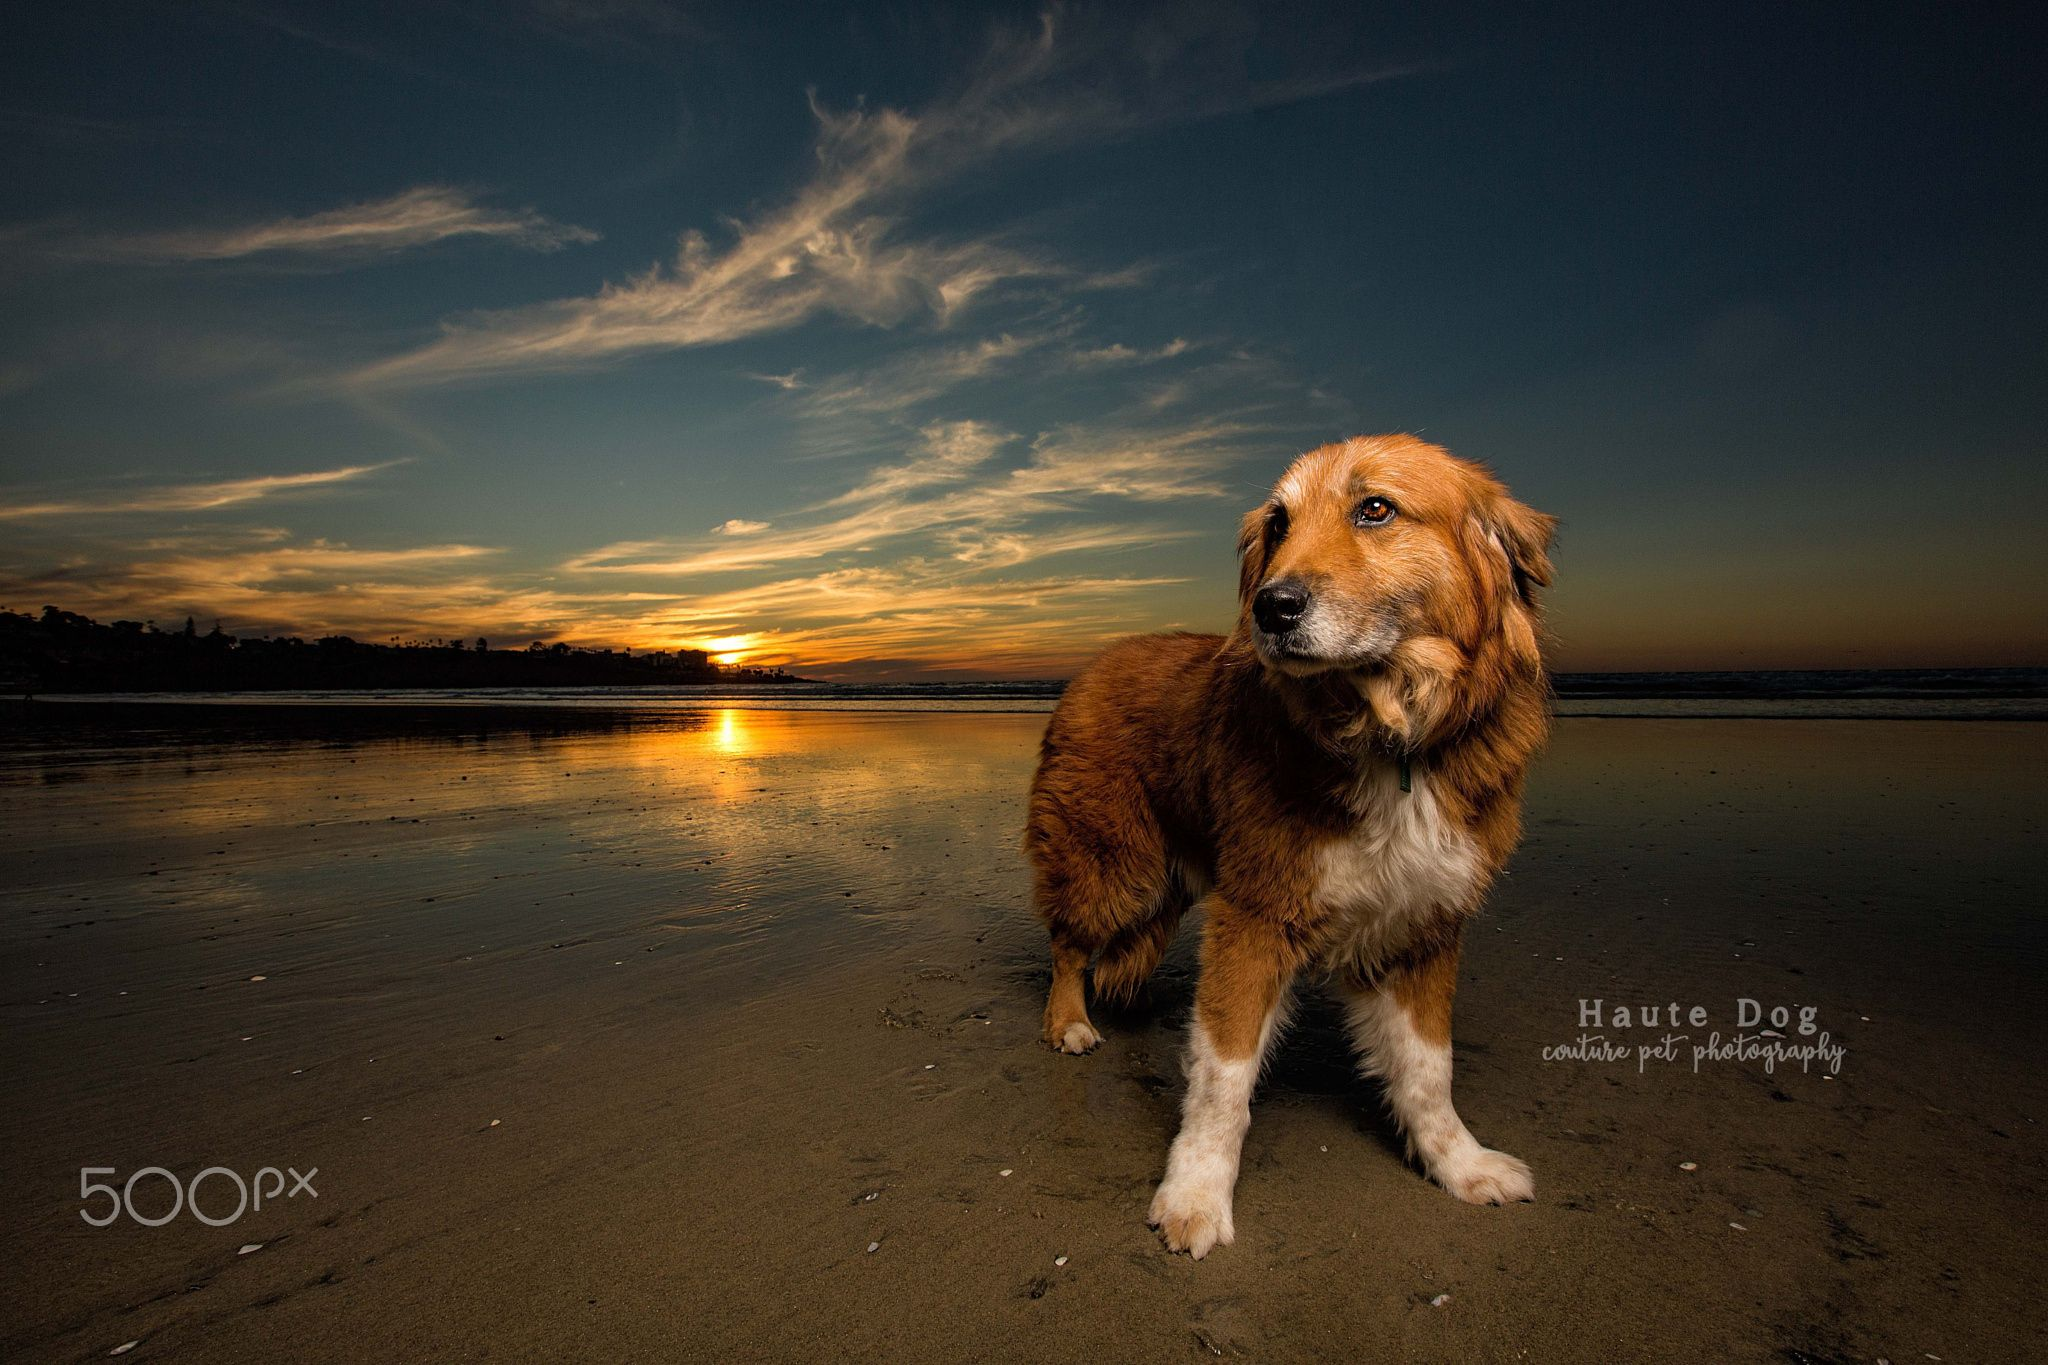 red bernese mountain dog at sunset by haute dog couture pet photography